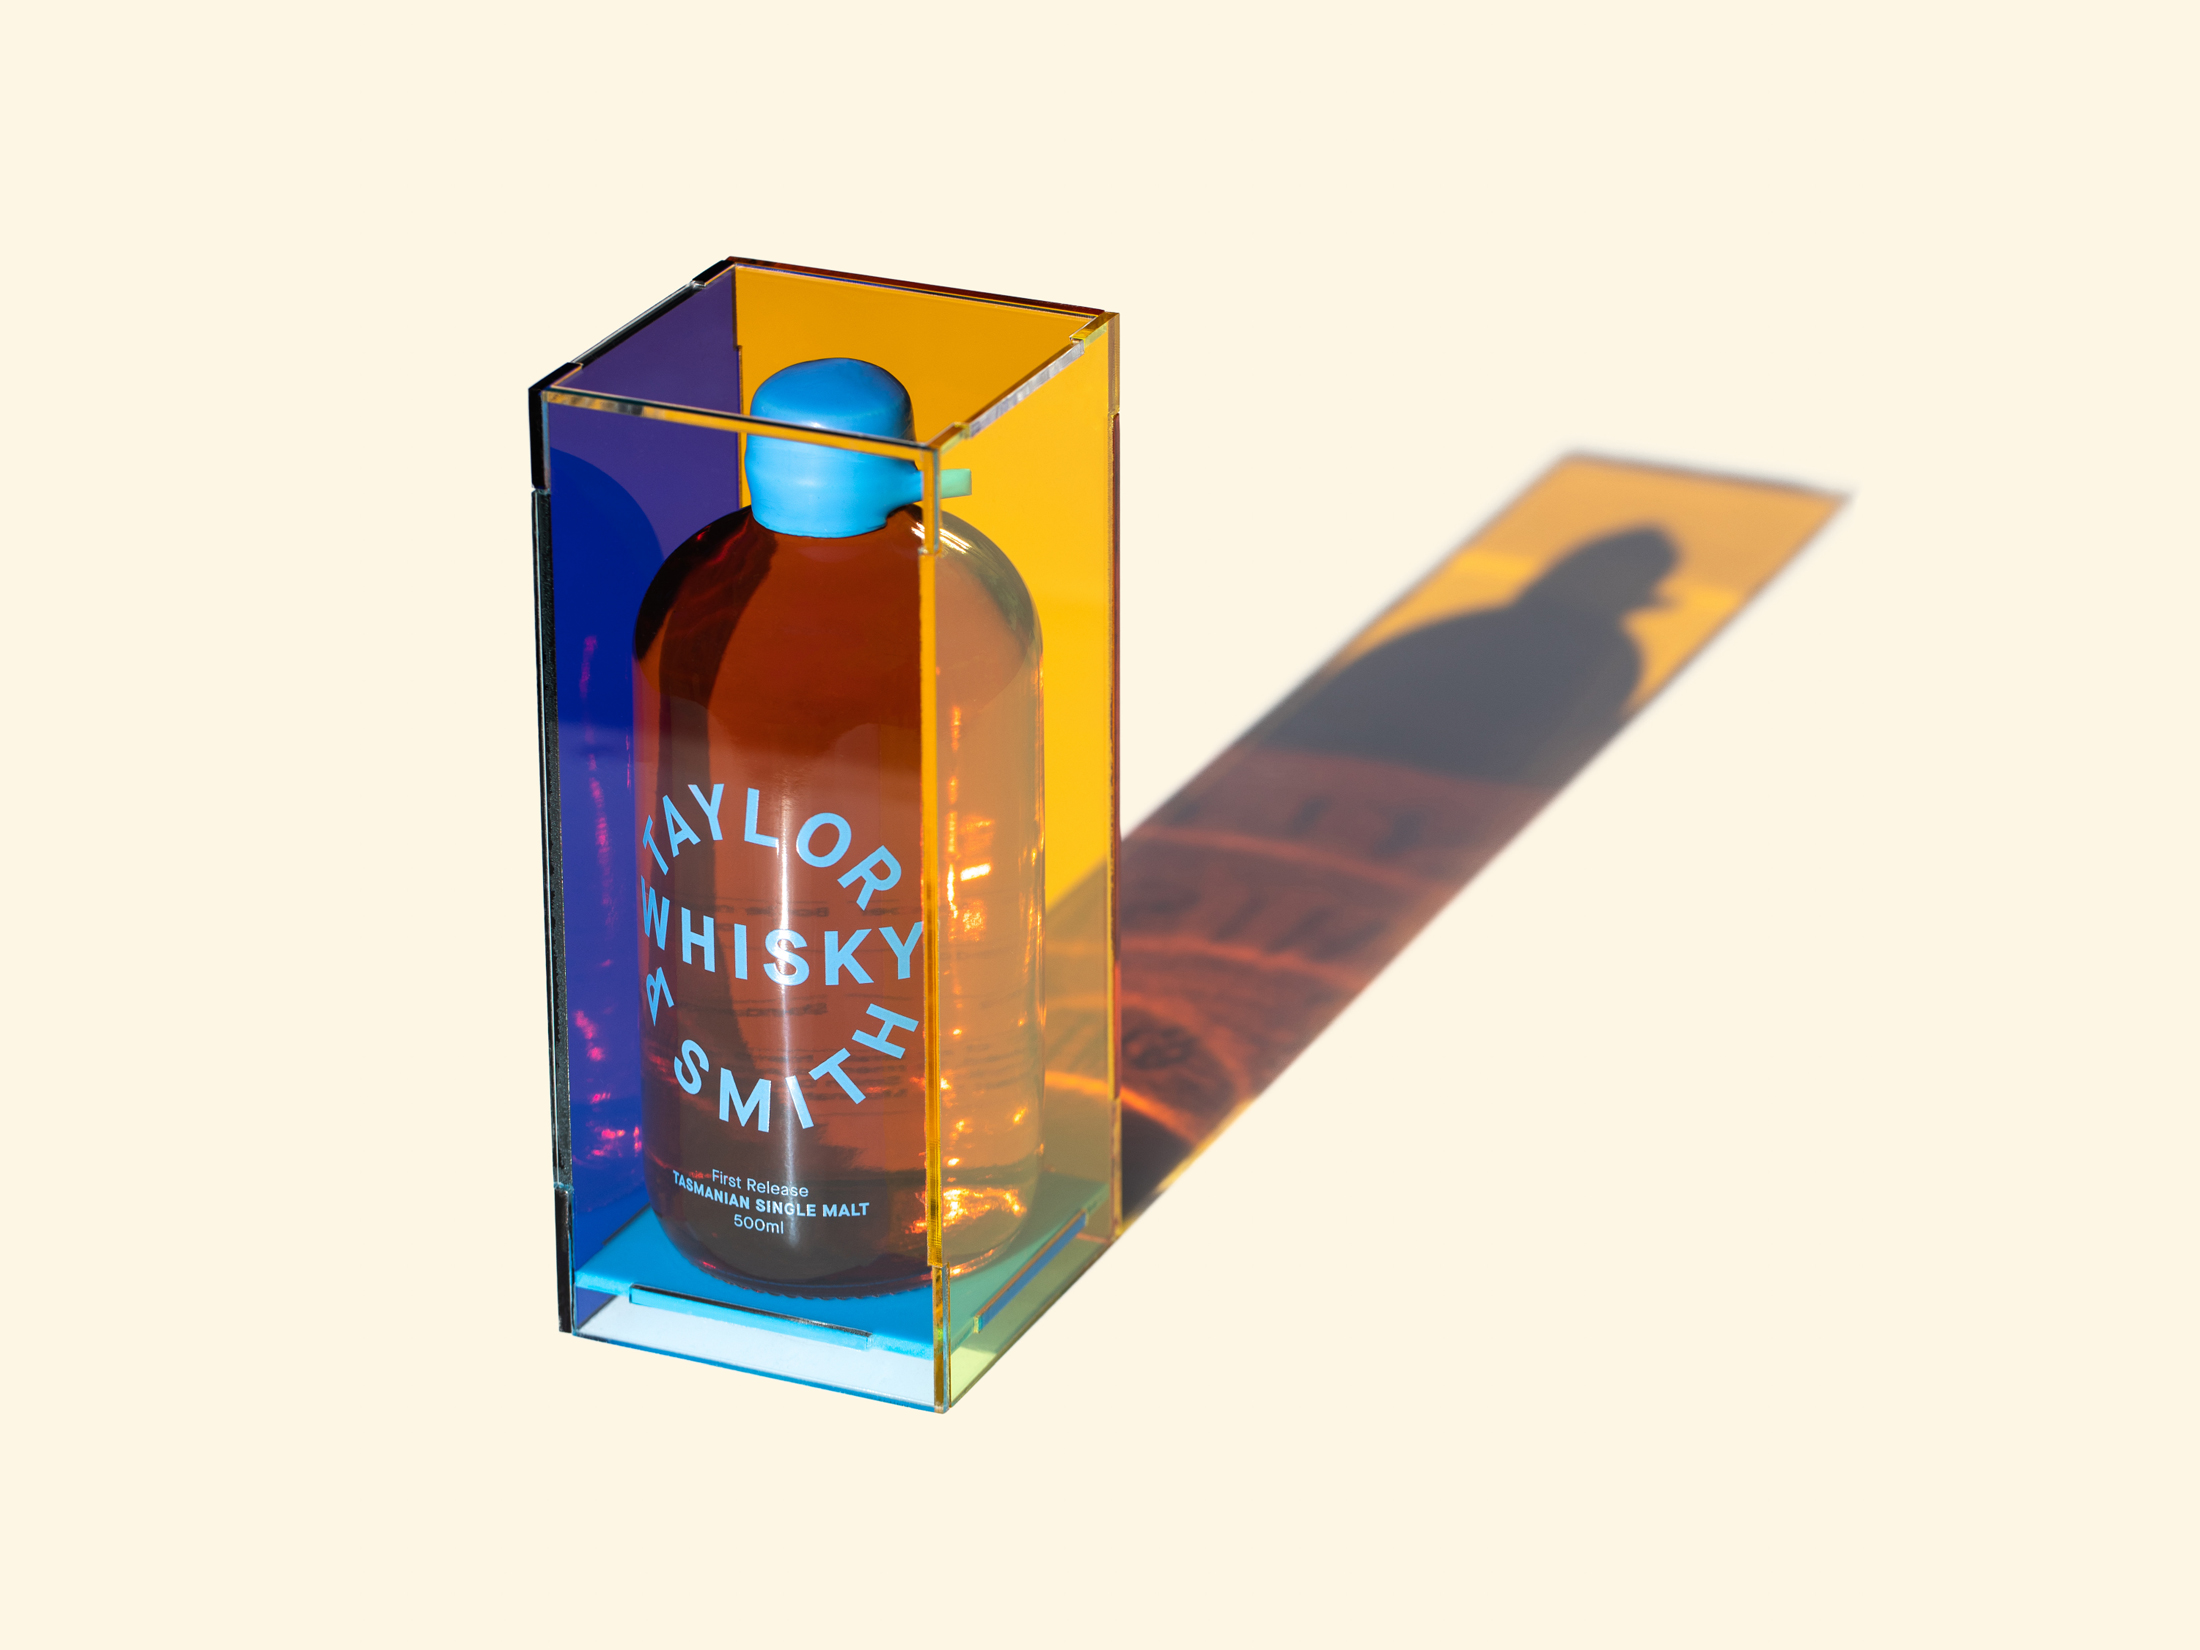 Megan Perkins Creates Packaging Design and Launch Campaign for Taylor & Smith Distilling Co. First Single Malt Whisky